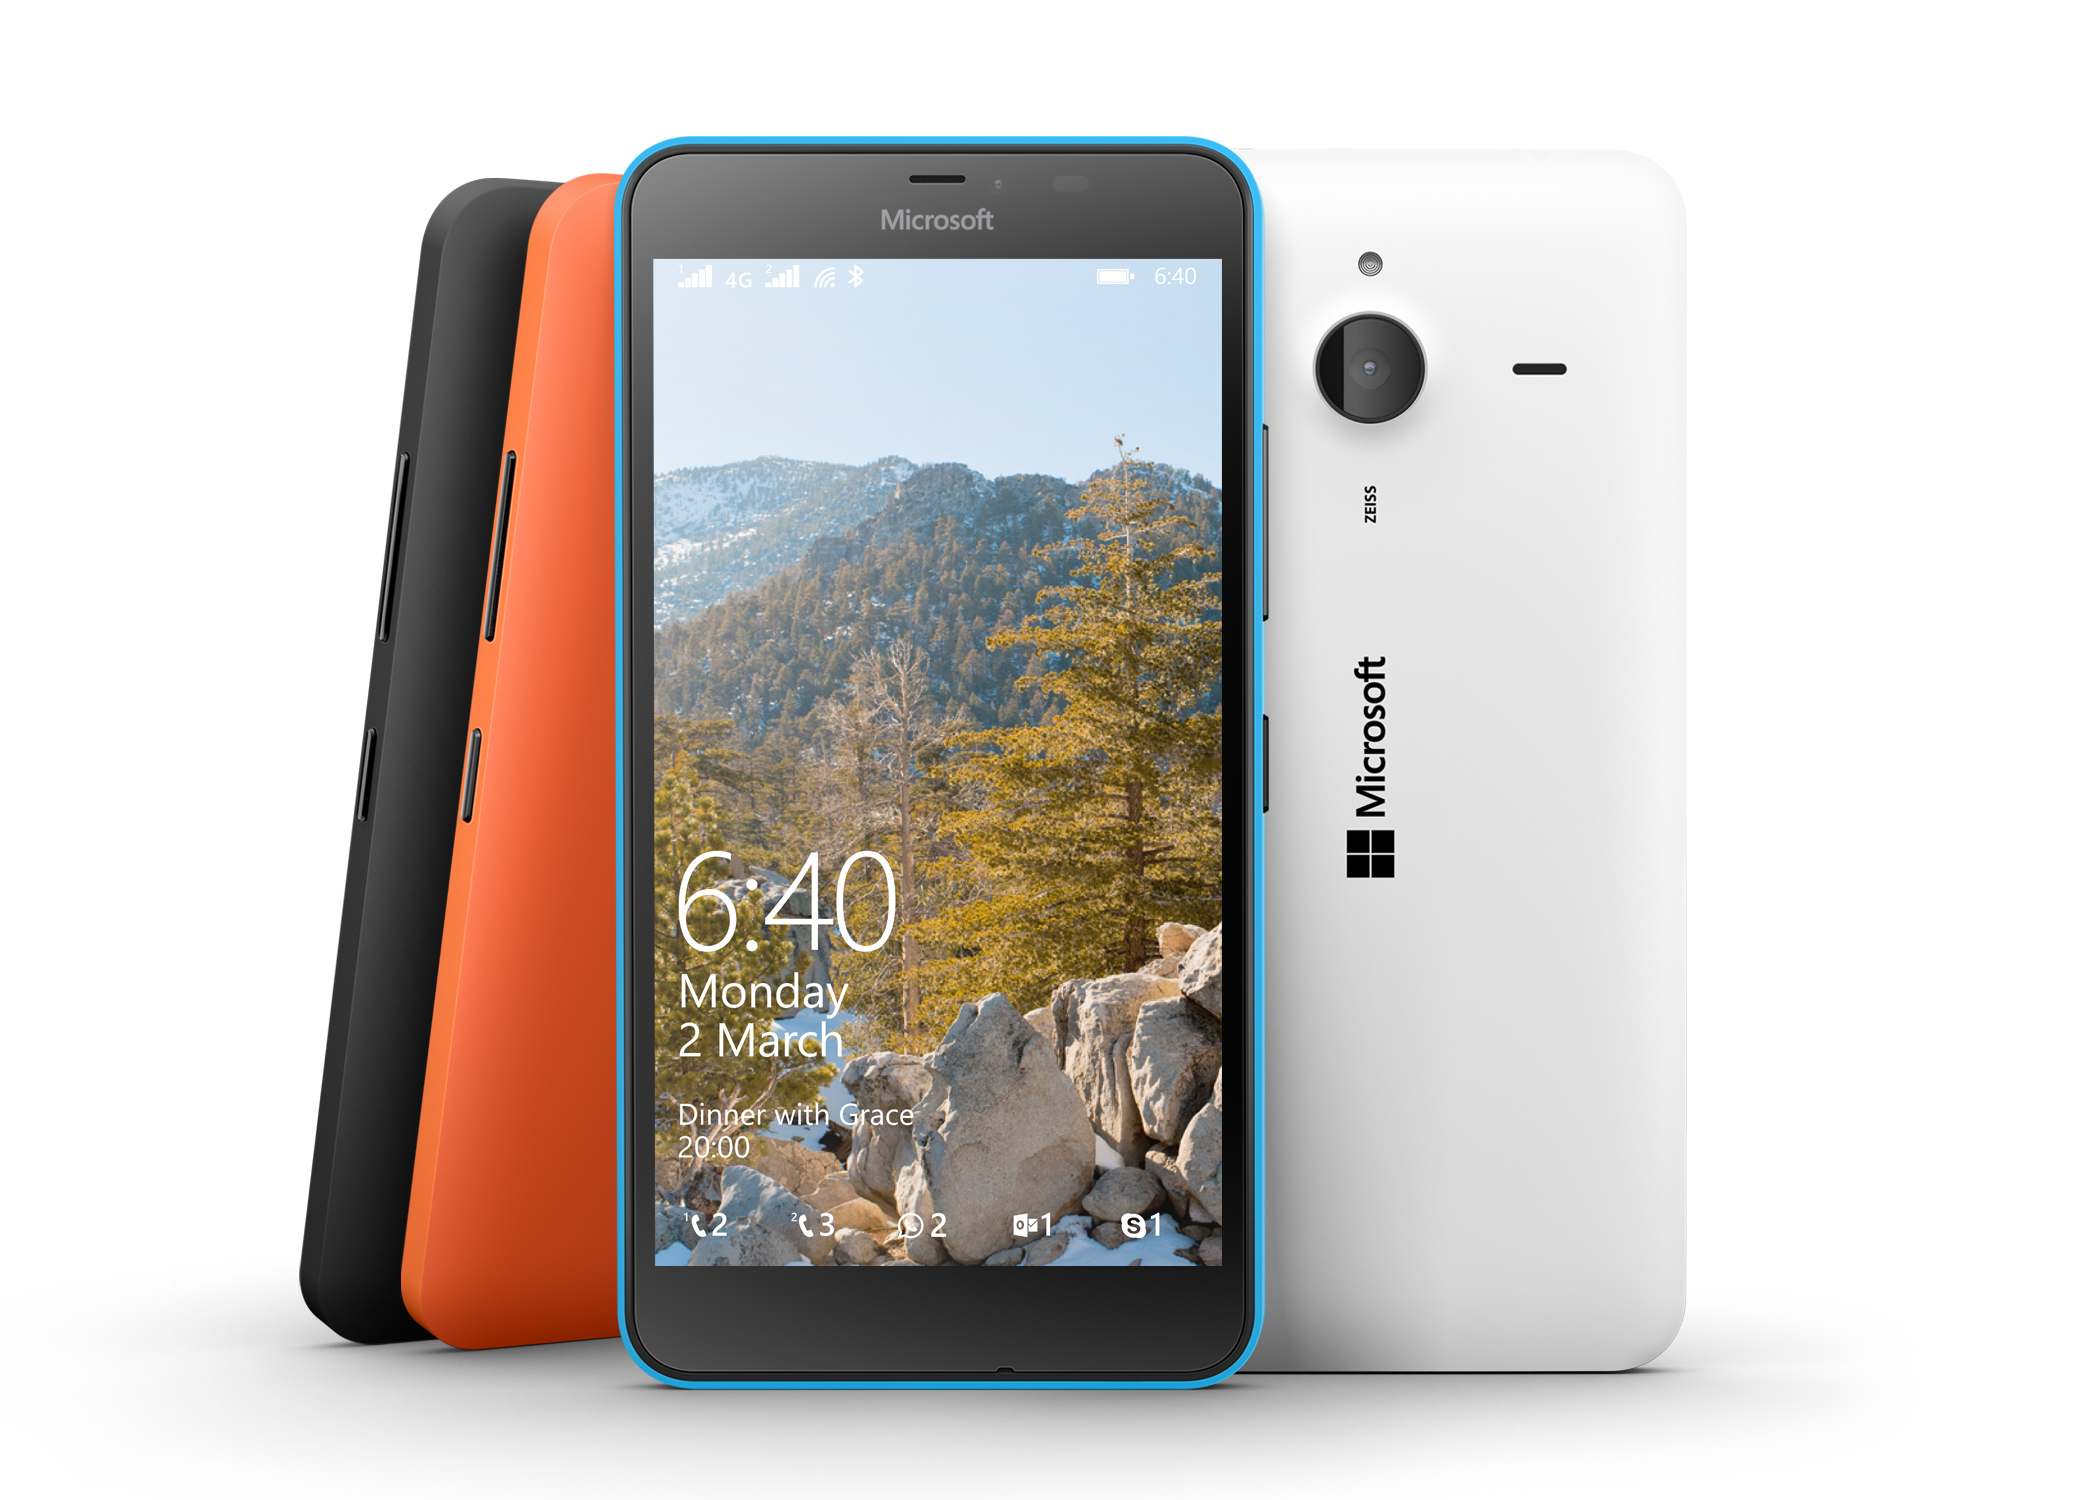 Nokia finally unveils not one but two windows phones the lumia 800 - Windows Phone Microsoft Brings Lumia 640 And 640 Xl To Singapore